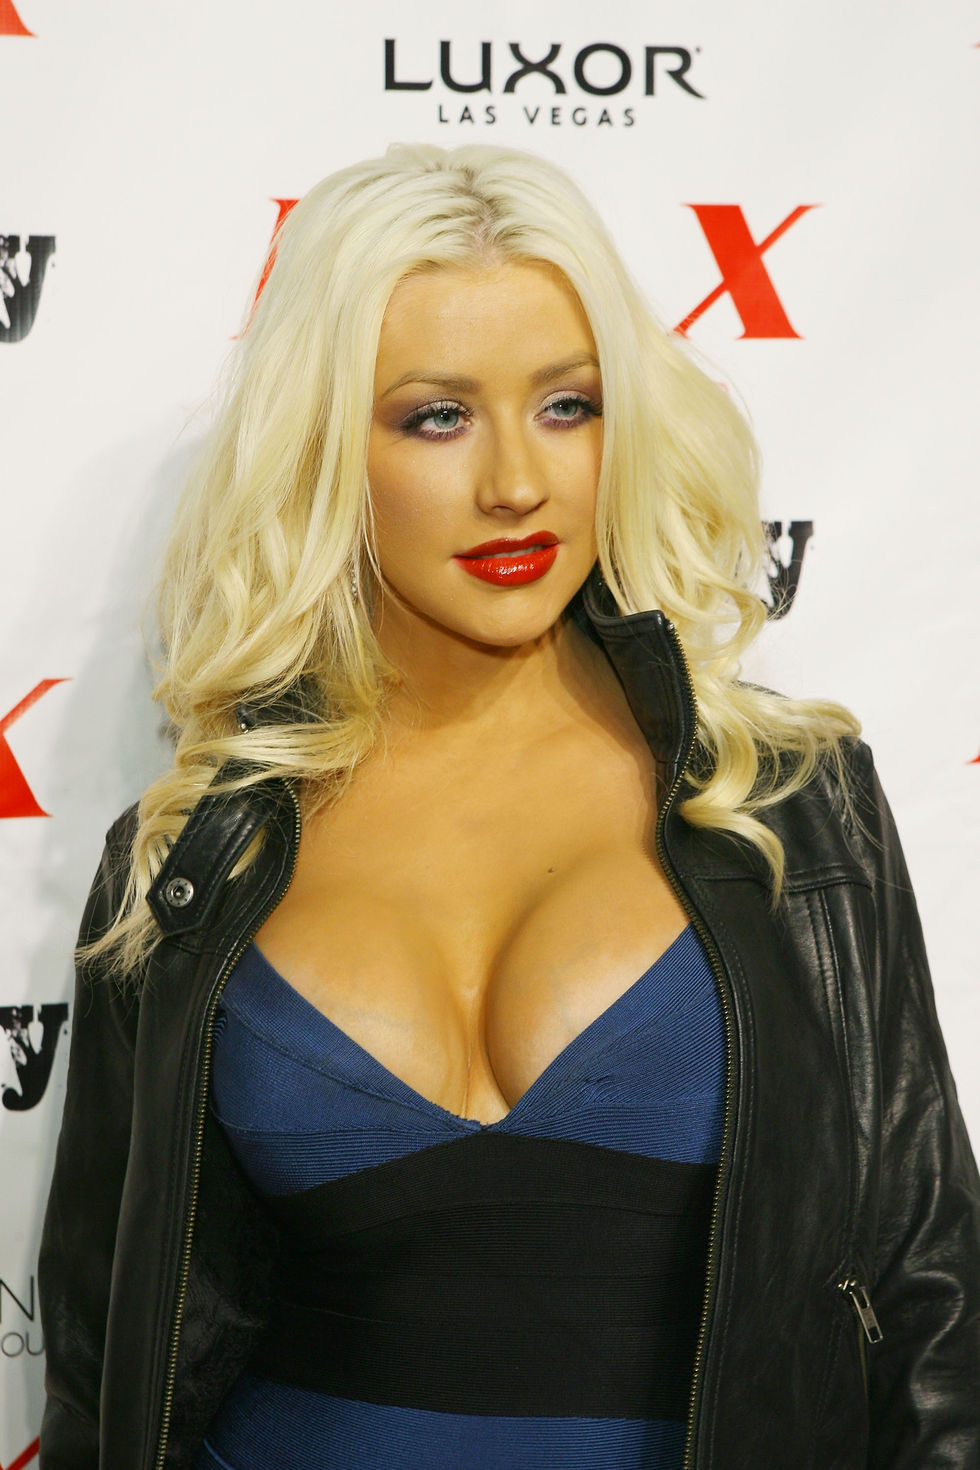 christina-aguilera-at-lax-nightclub-in-las-vegas-01